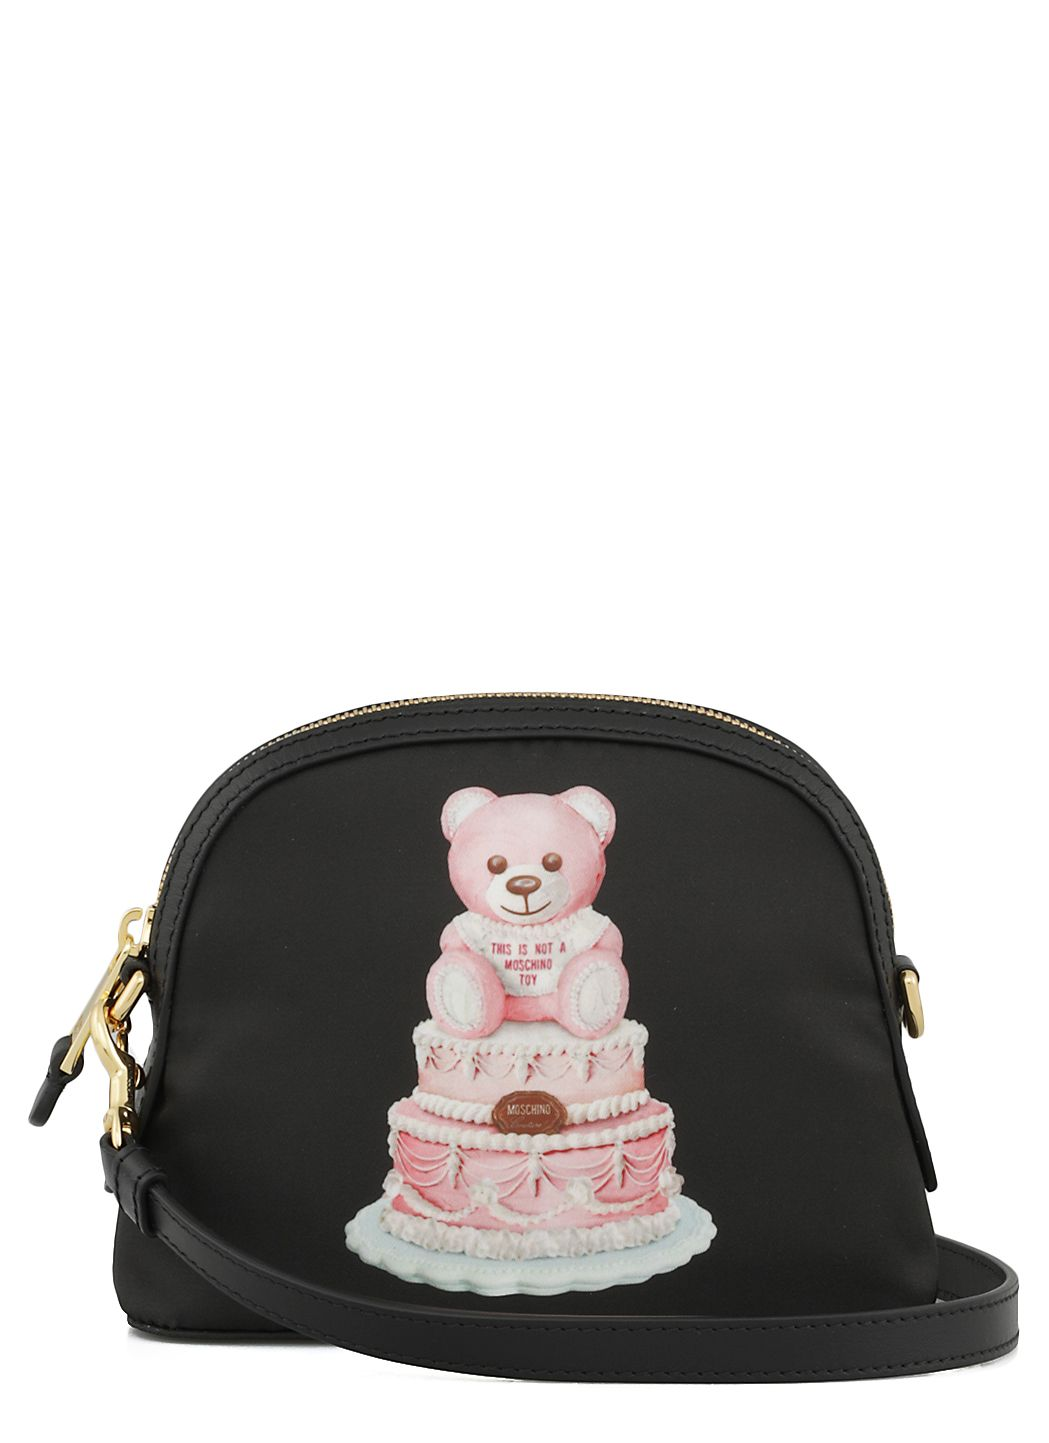 Black Cake Teddy Bear shoulder bag